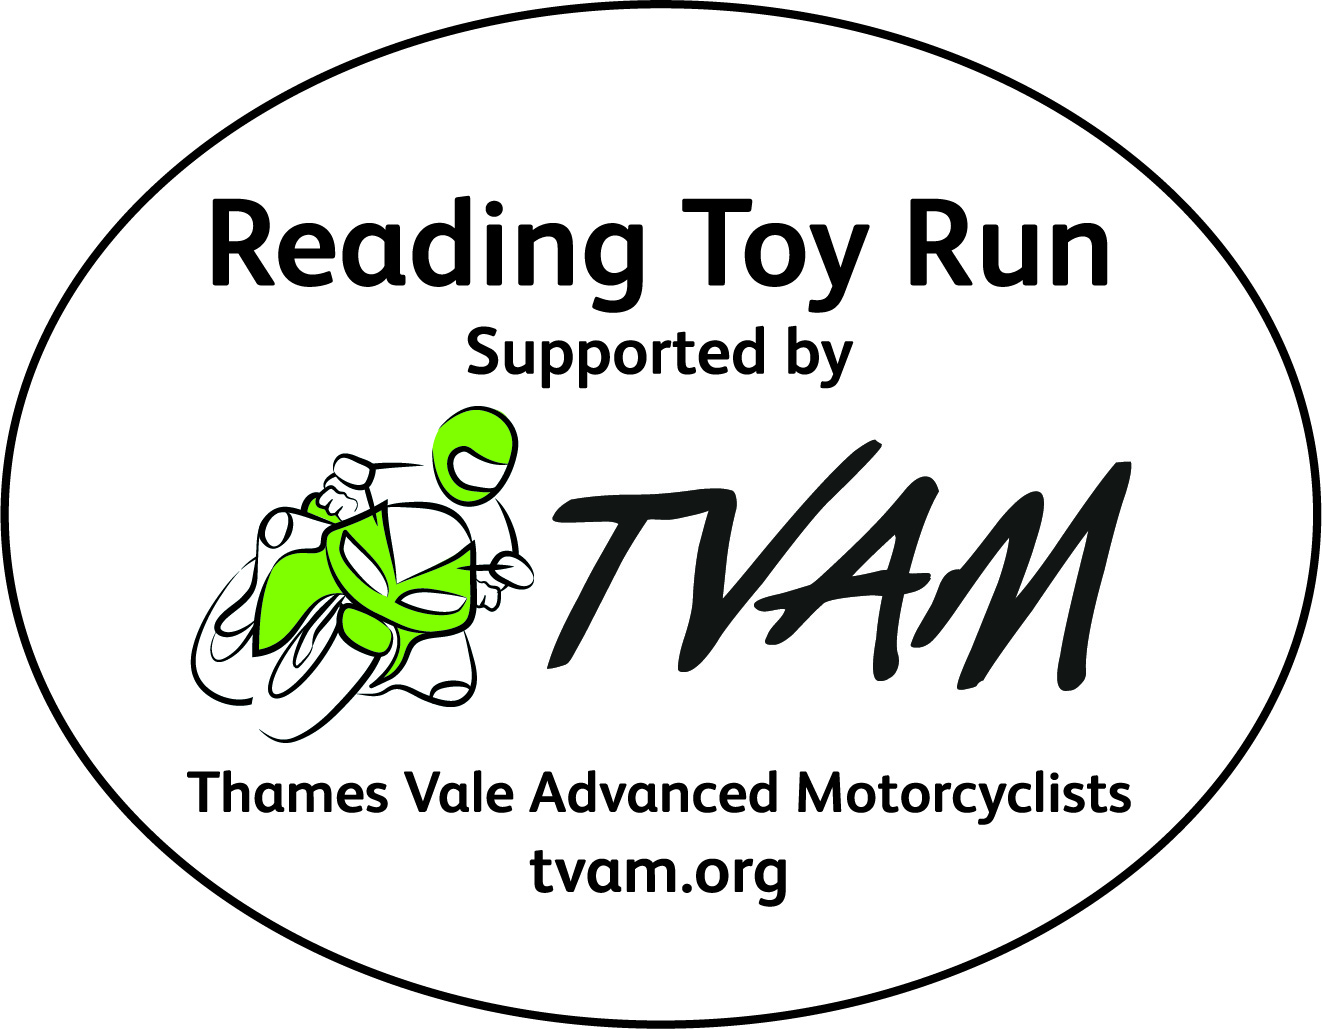 Reading Toy Run: Thank You For Your Support!